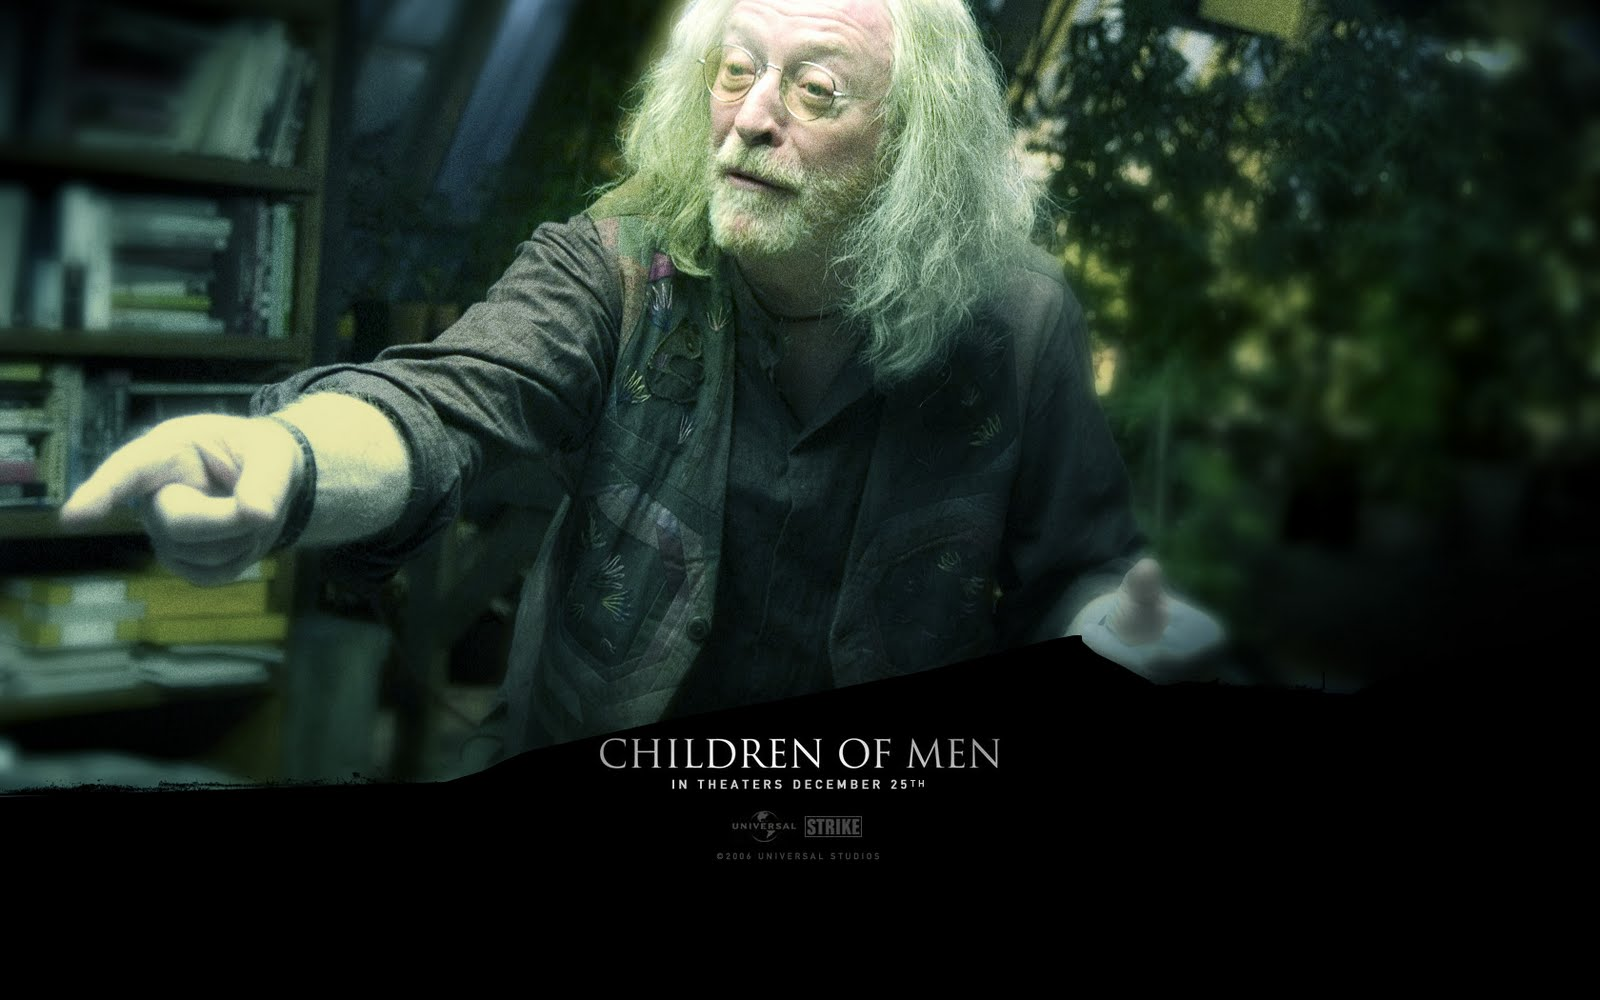 http://4.bp.blogspot.com/_ViNMqzLDw5g/TArQBP67AWI/AAAAAAAAFx0/305vKmVUnHQ/s1600/Michael_Caine_in_Children_of_Men_Wallpaper_10_1280.jpg